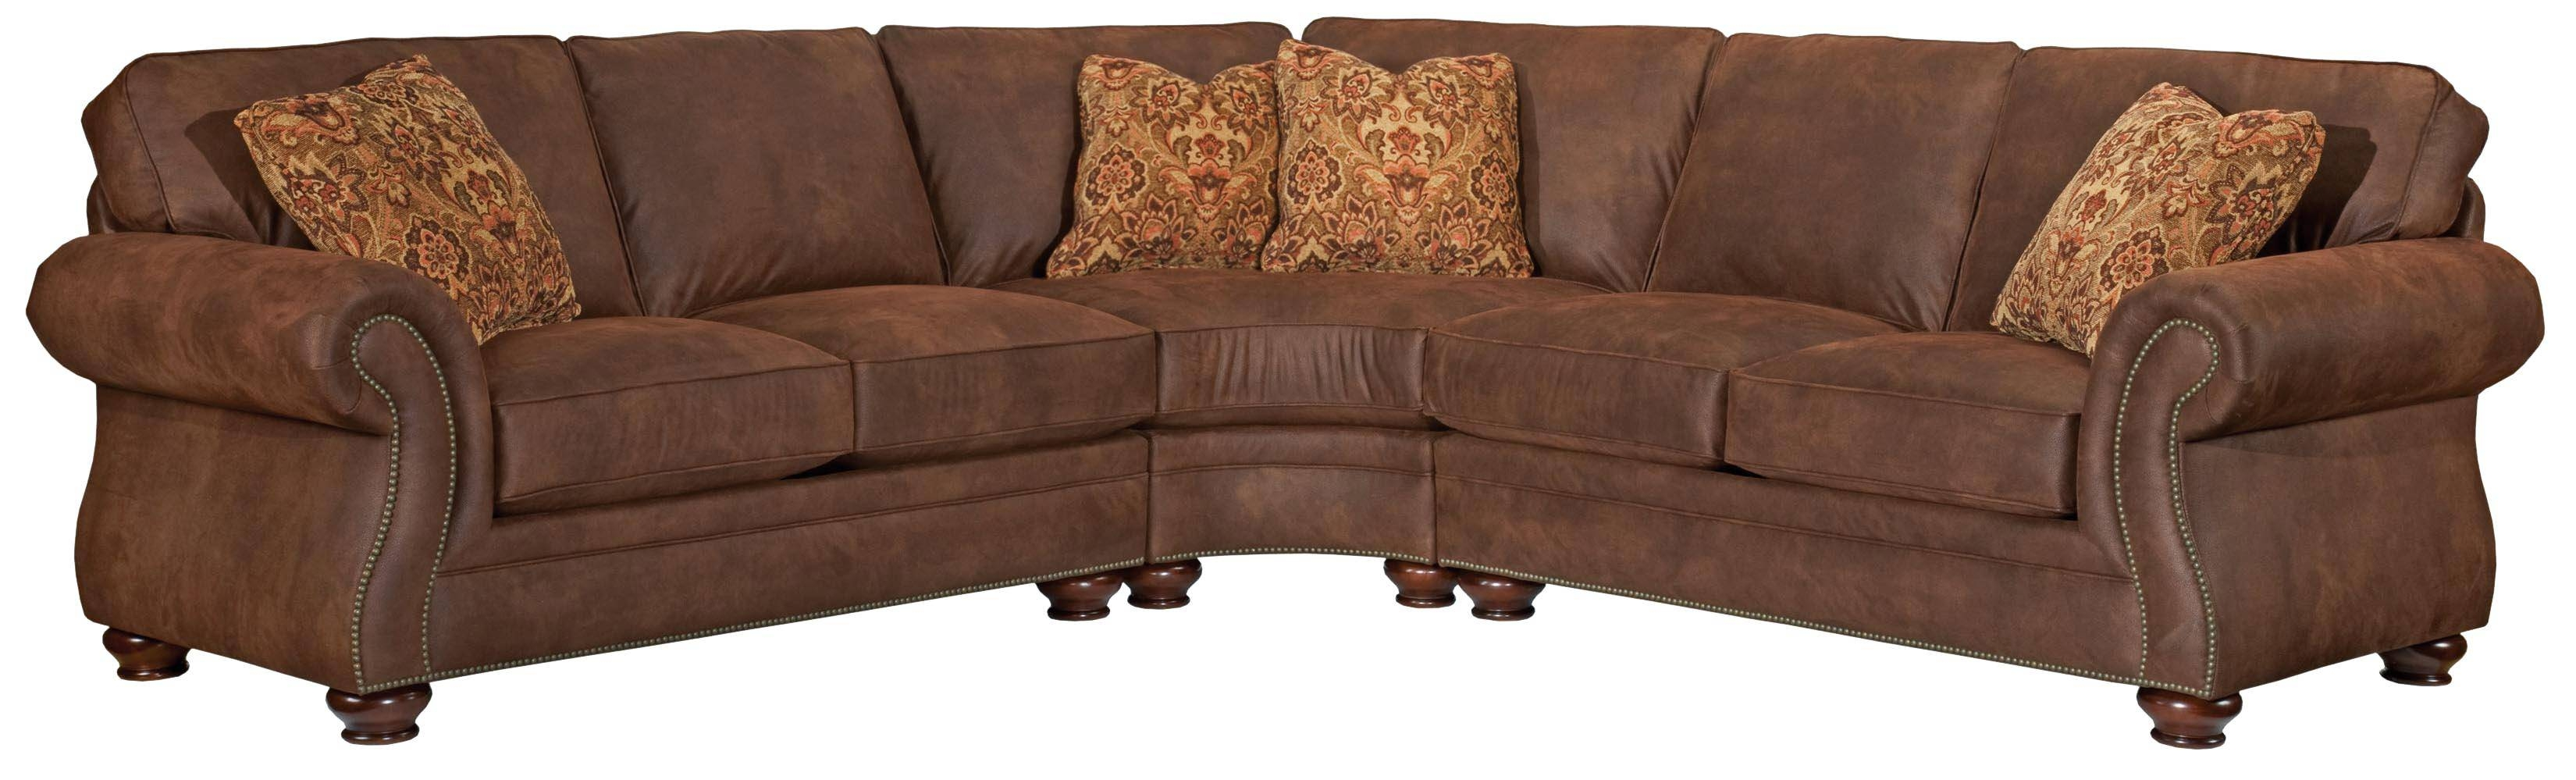 Broyhill Furniture Laramie 3 Piece Wedge Sectional Sofa - Wayside intended for Broyhill Sectional Sofas (Image 7 of 30)